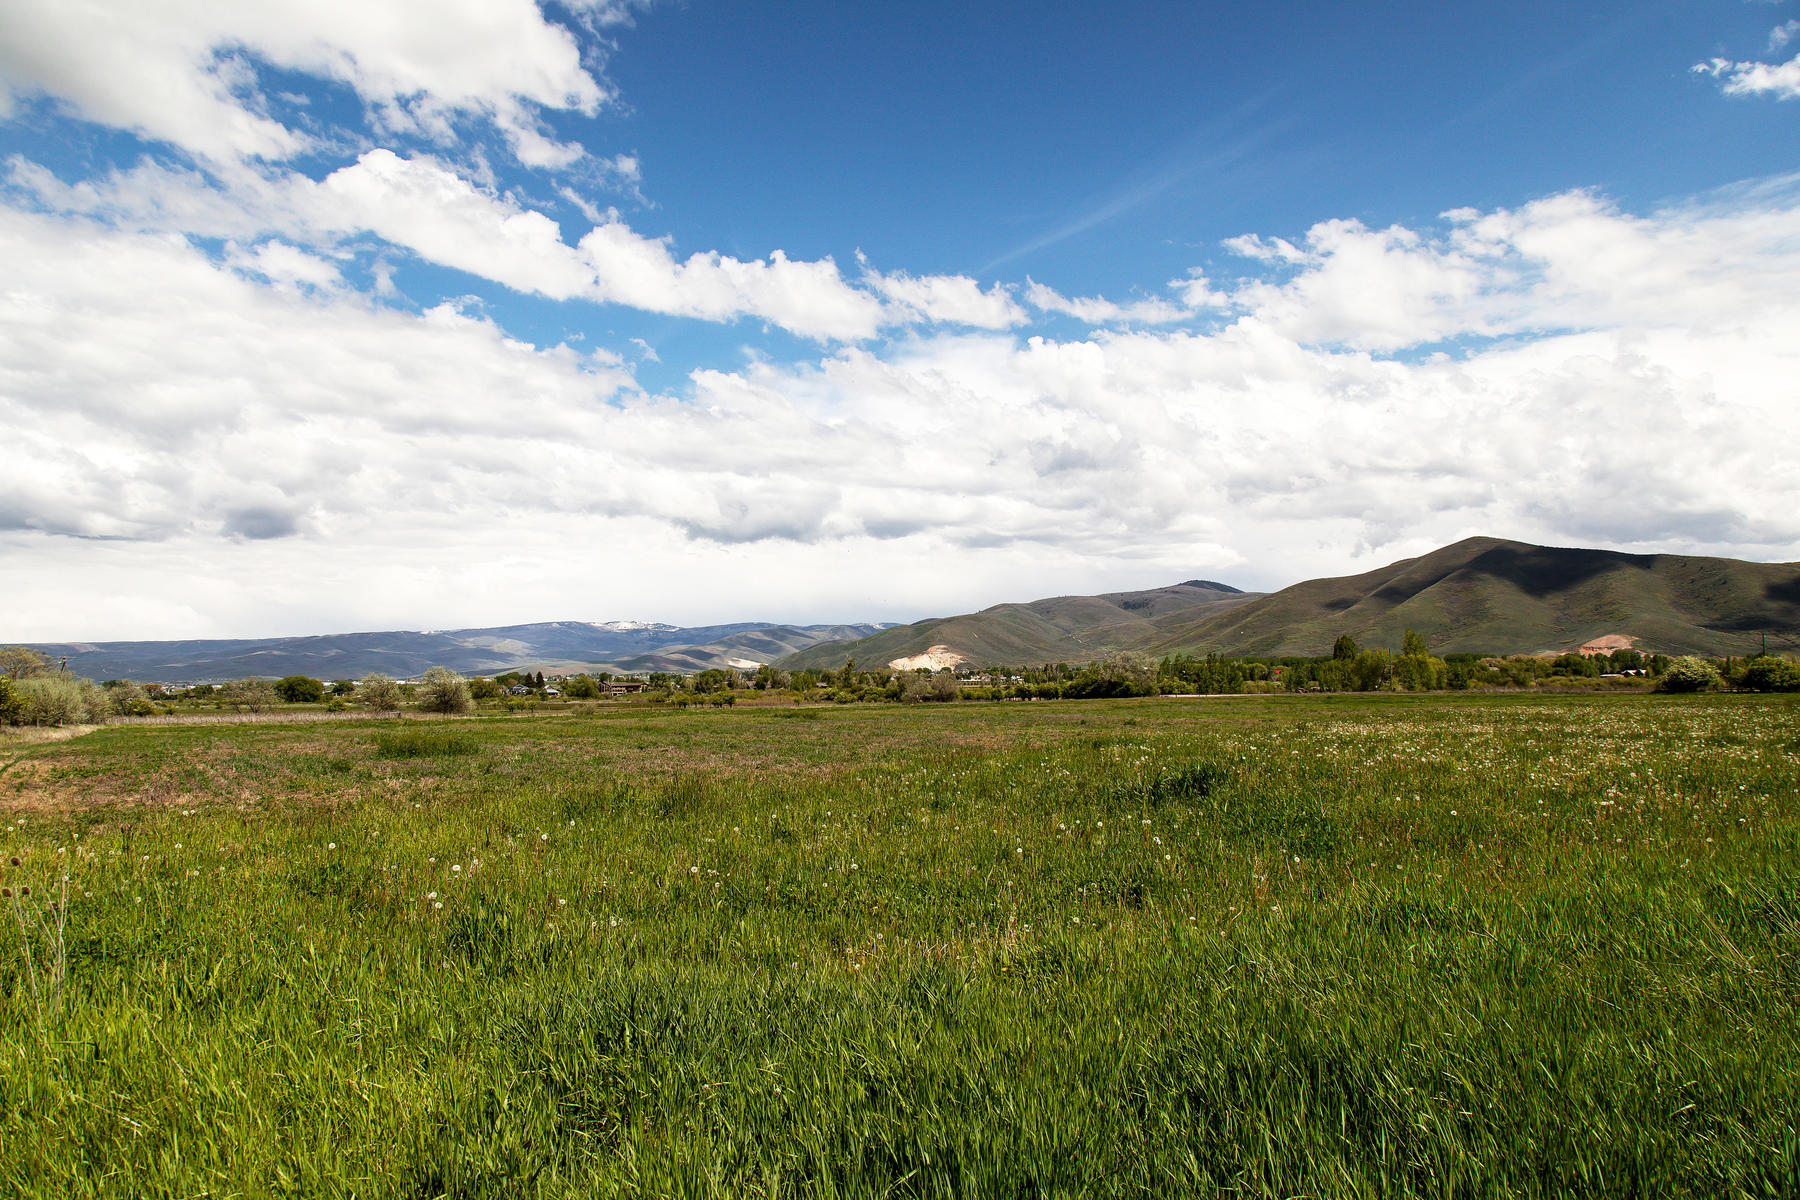 Land for Sale at Build Your Dream Home on this 45 Acre Parcel of Land 1200 South Highway 113, Midway, Utah 84049 United States